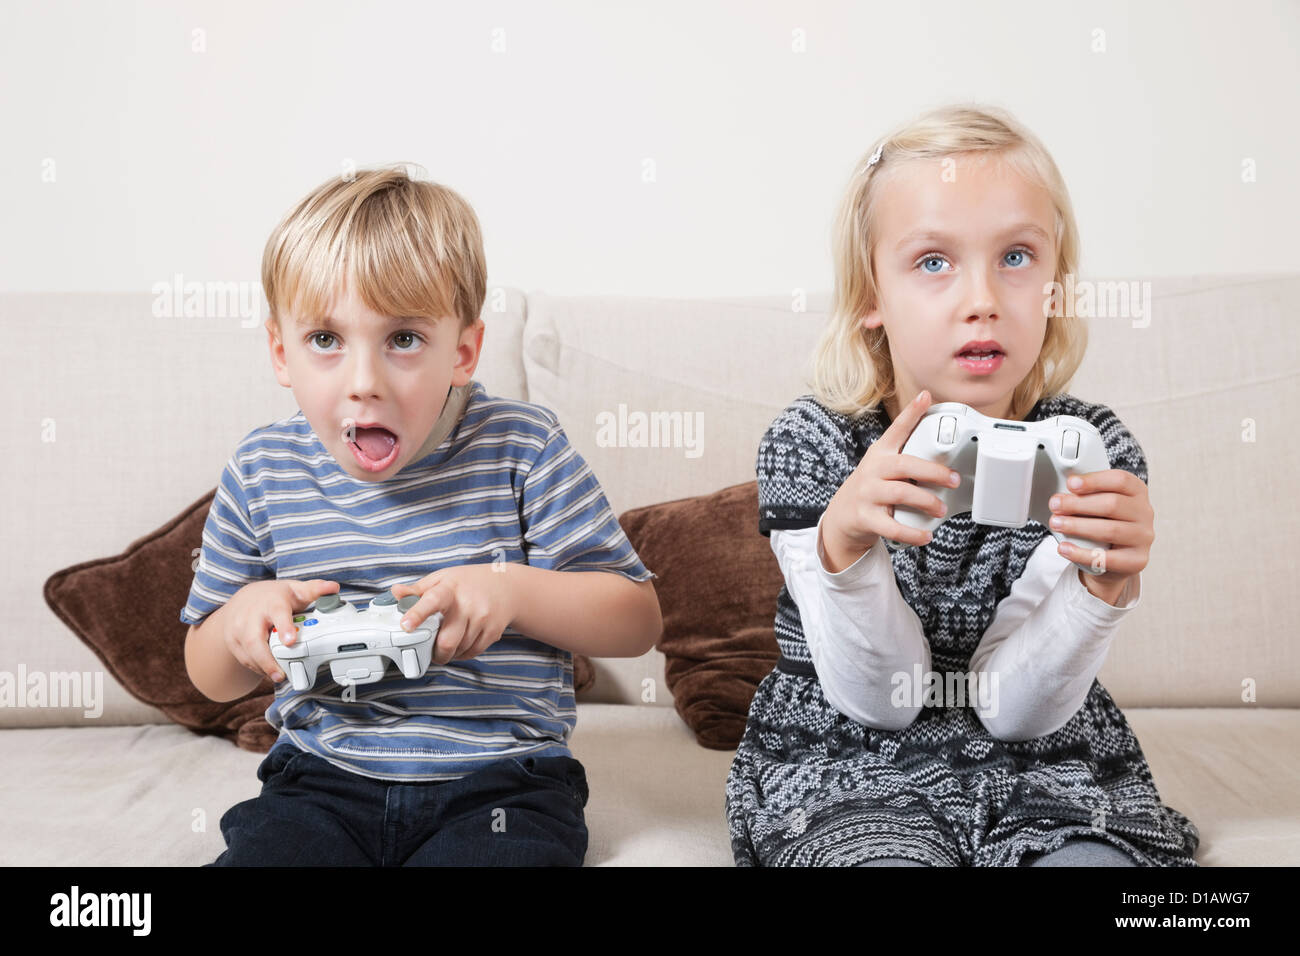 Young brother sister playing video game - Stock Image